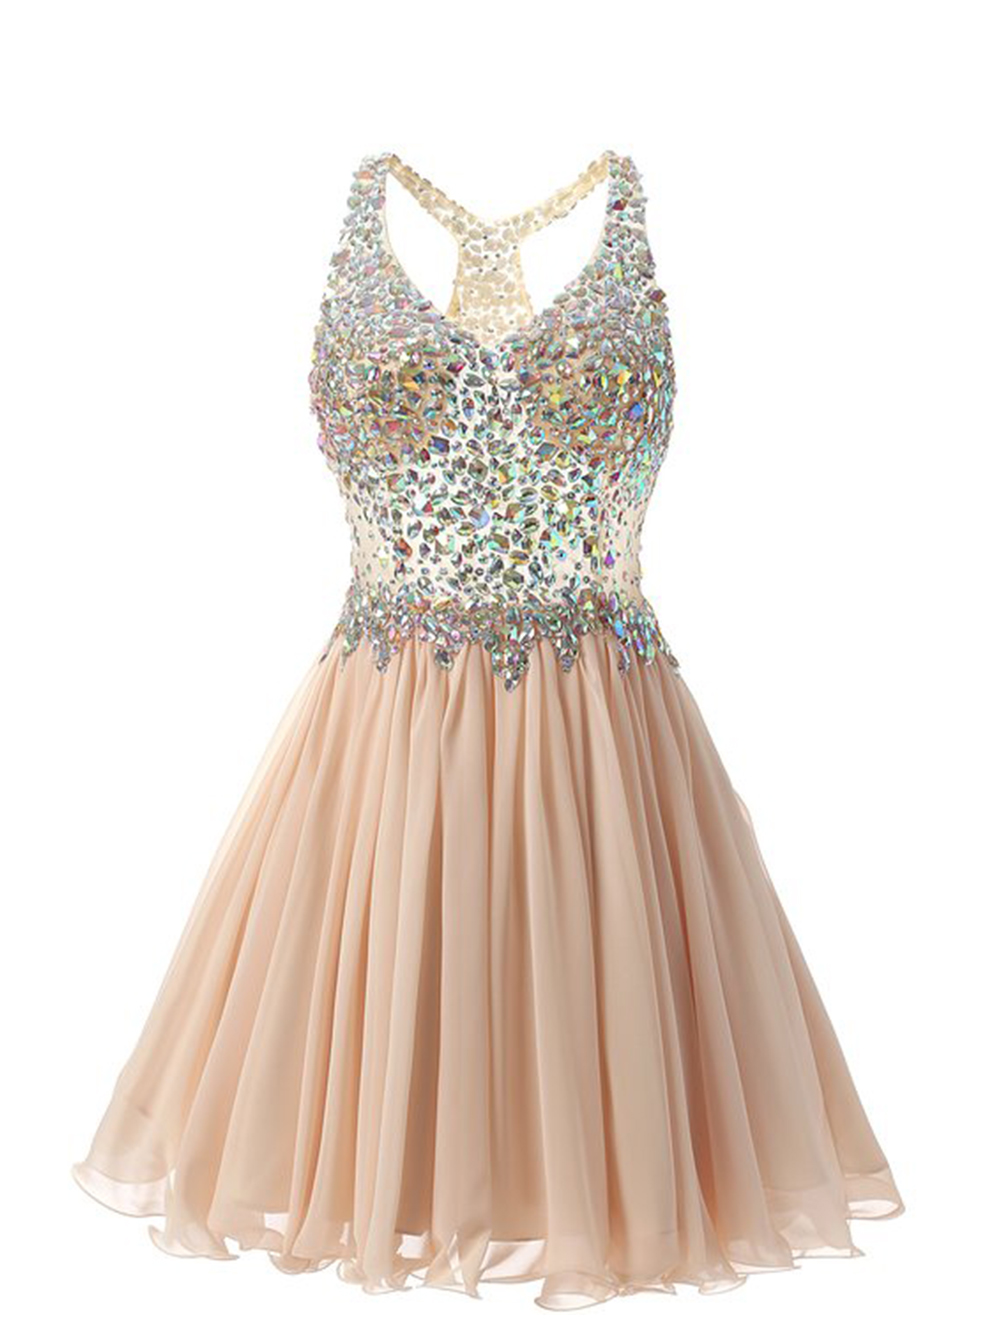 Stunning V-Neck Knee-Length Champagne Homecoming Dress with Beading фото